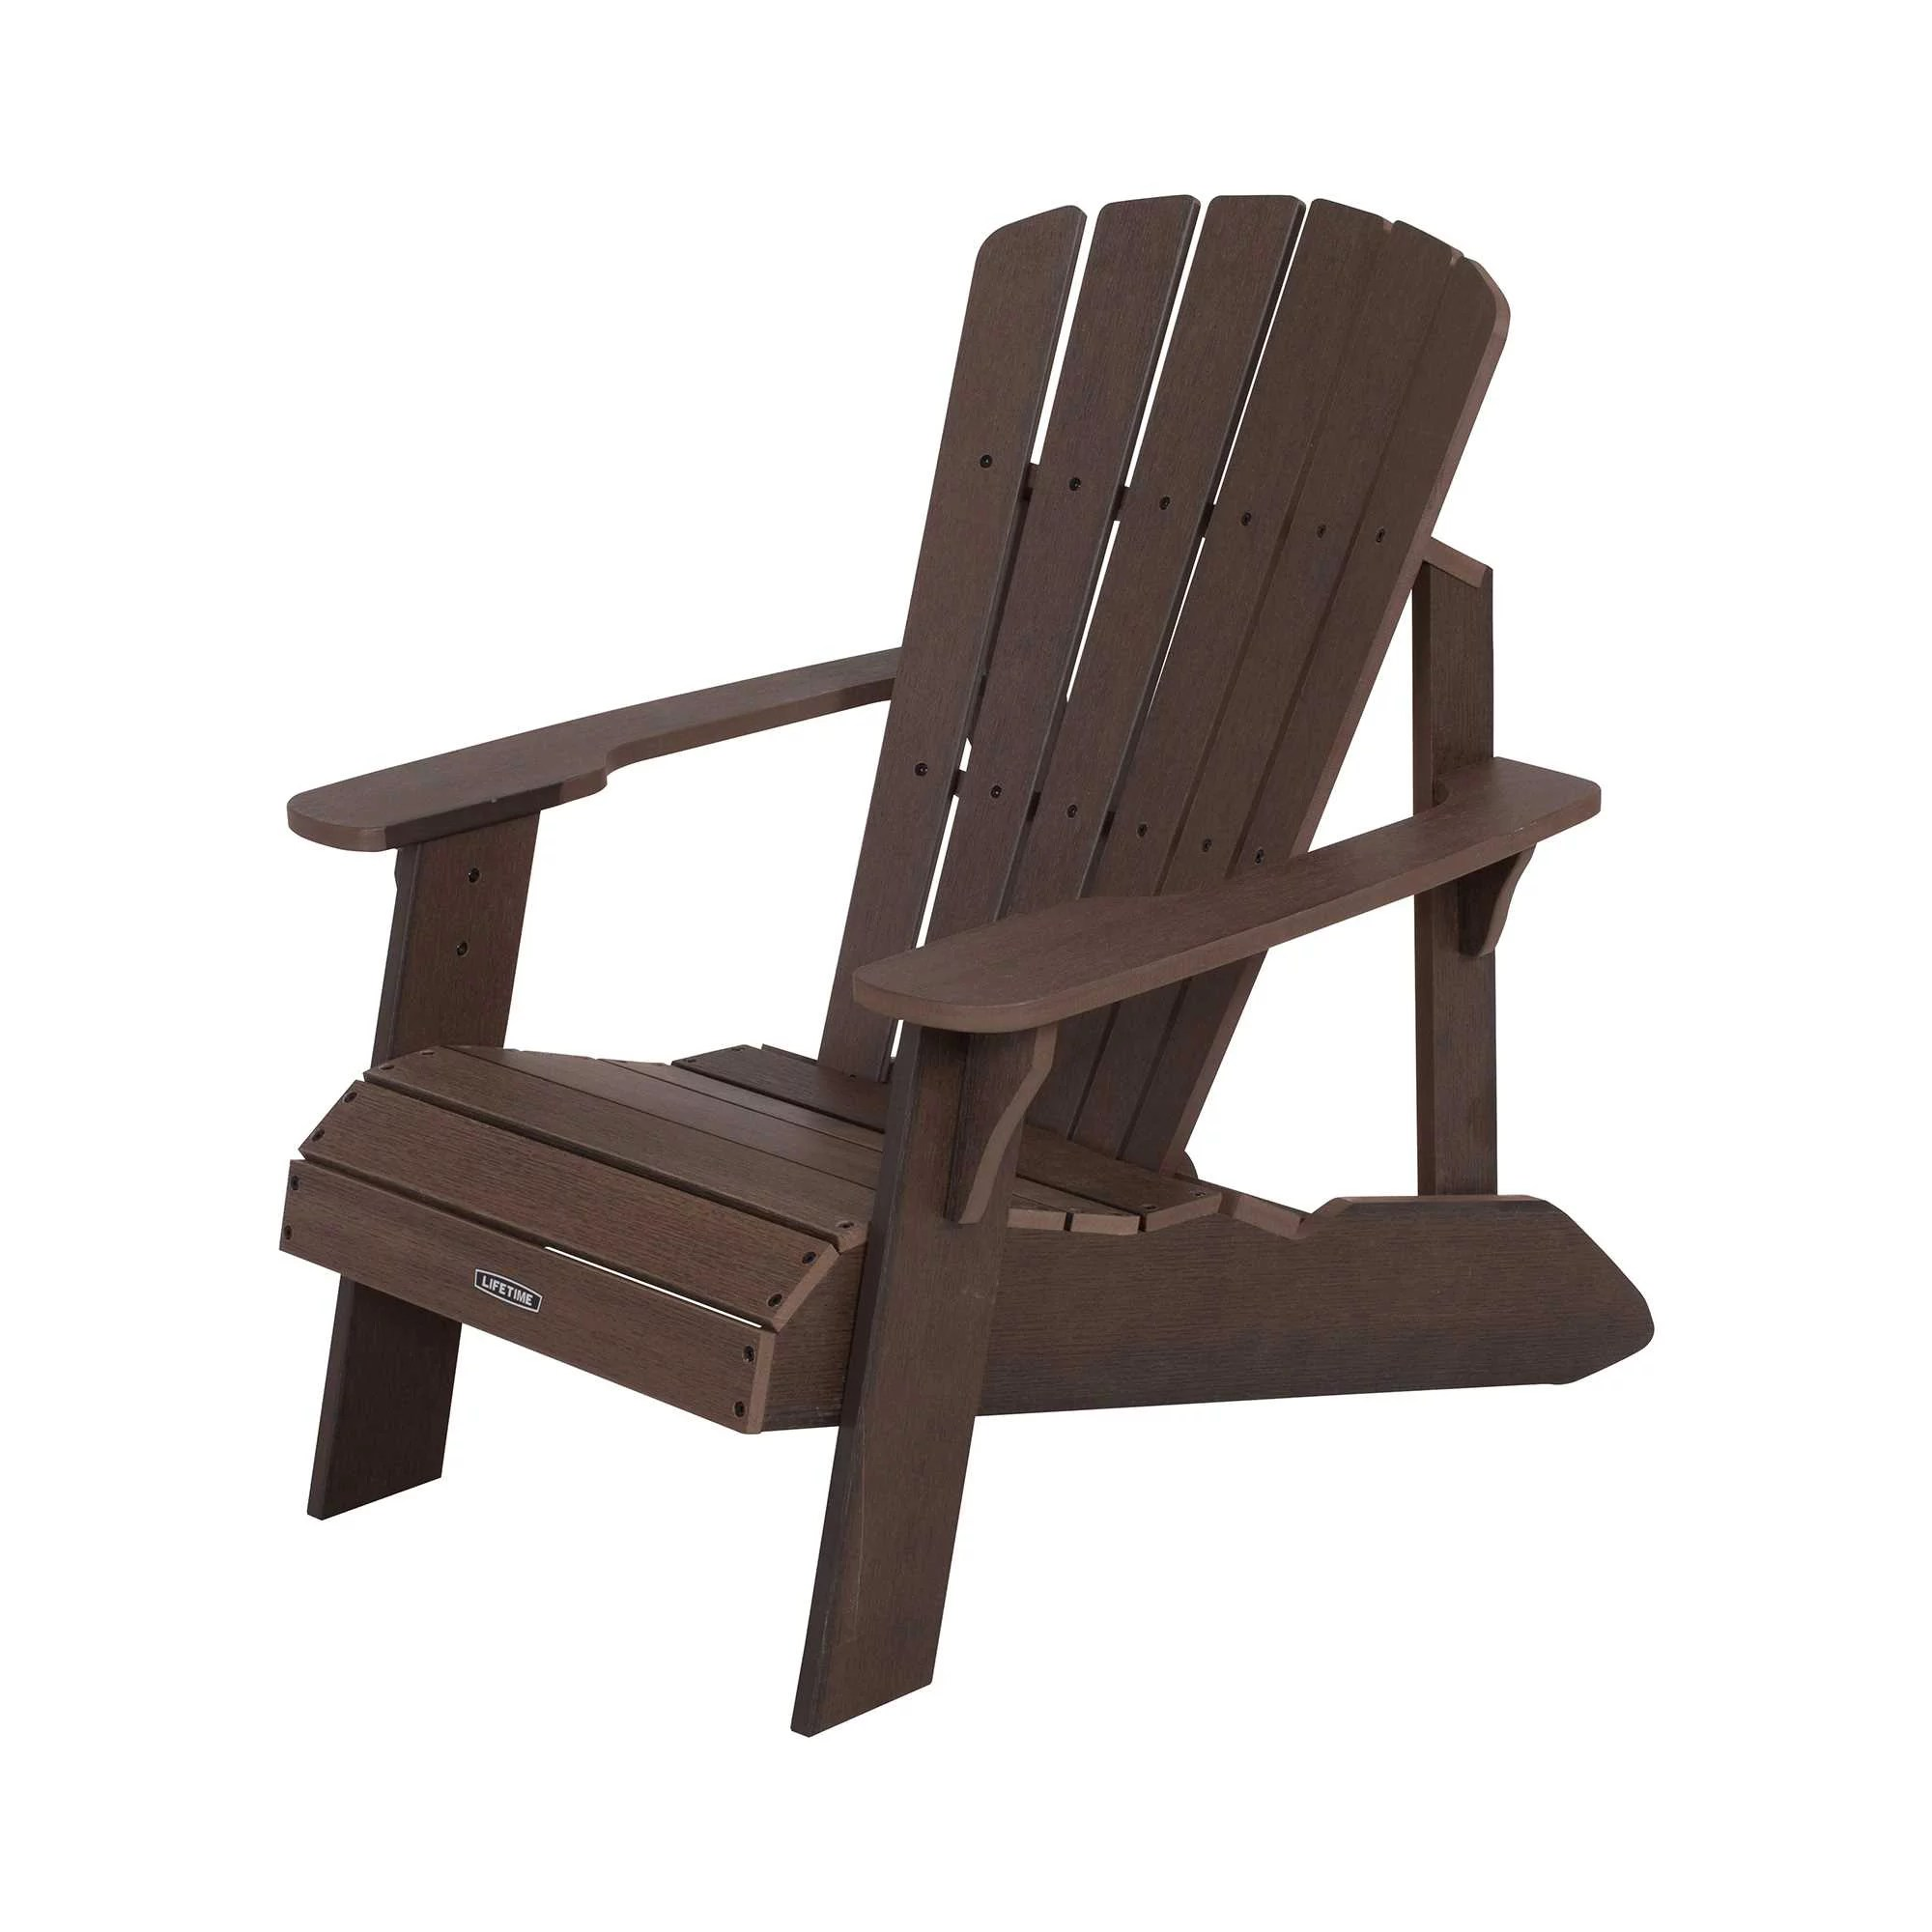 Lifetime Adirondack Chair Lifetime Adirondack Chair Rustic Brown 60289